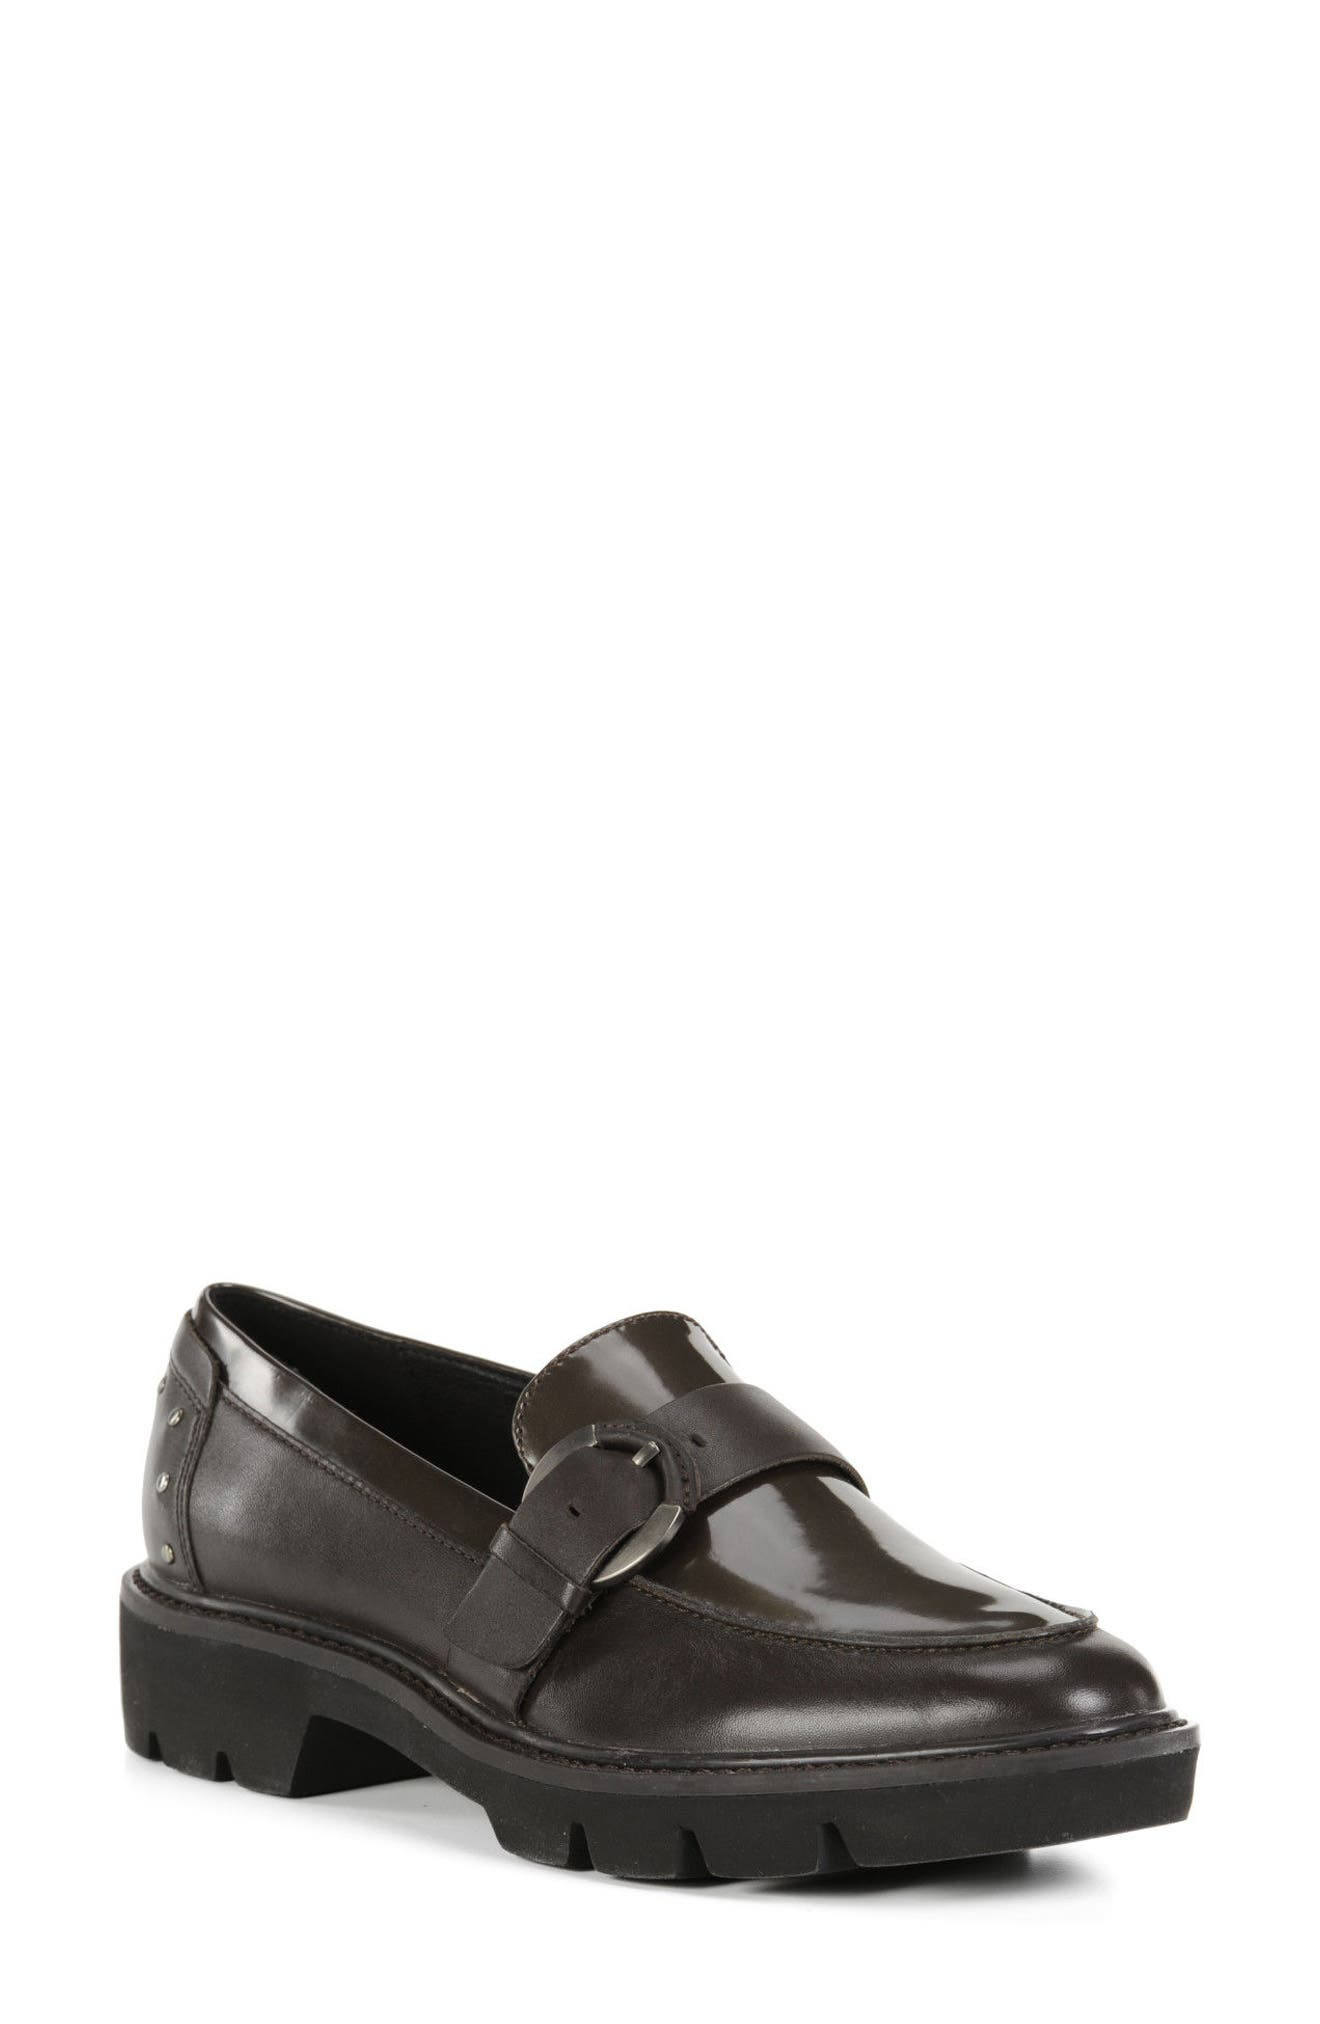 Quinlynn Loafer,                             Main thumbnail 1, color,                             Brown Leather